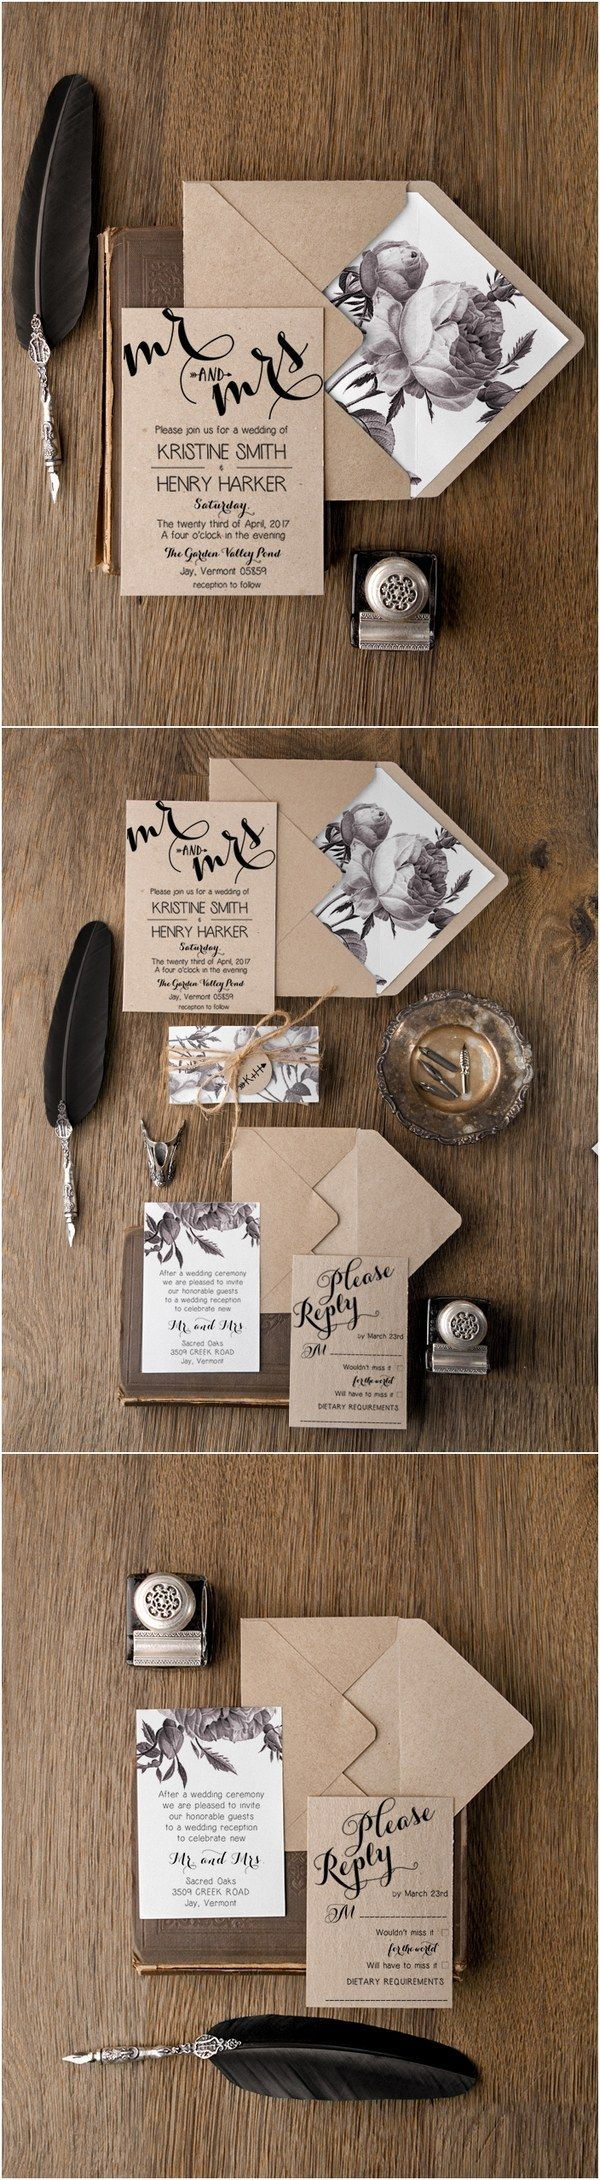 The 25 best Wedding invitations ideas – Create Invitations Online Free No Download